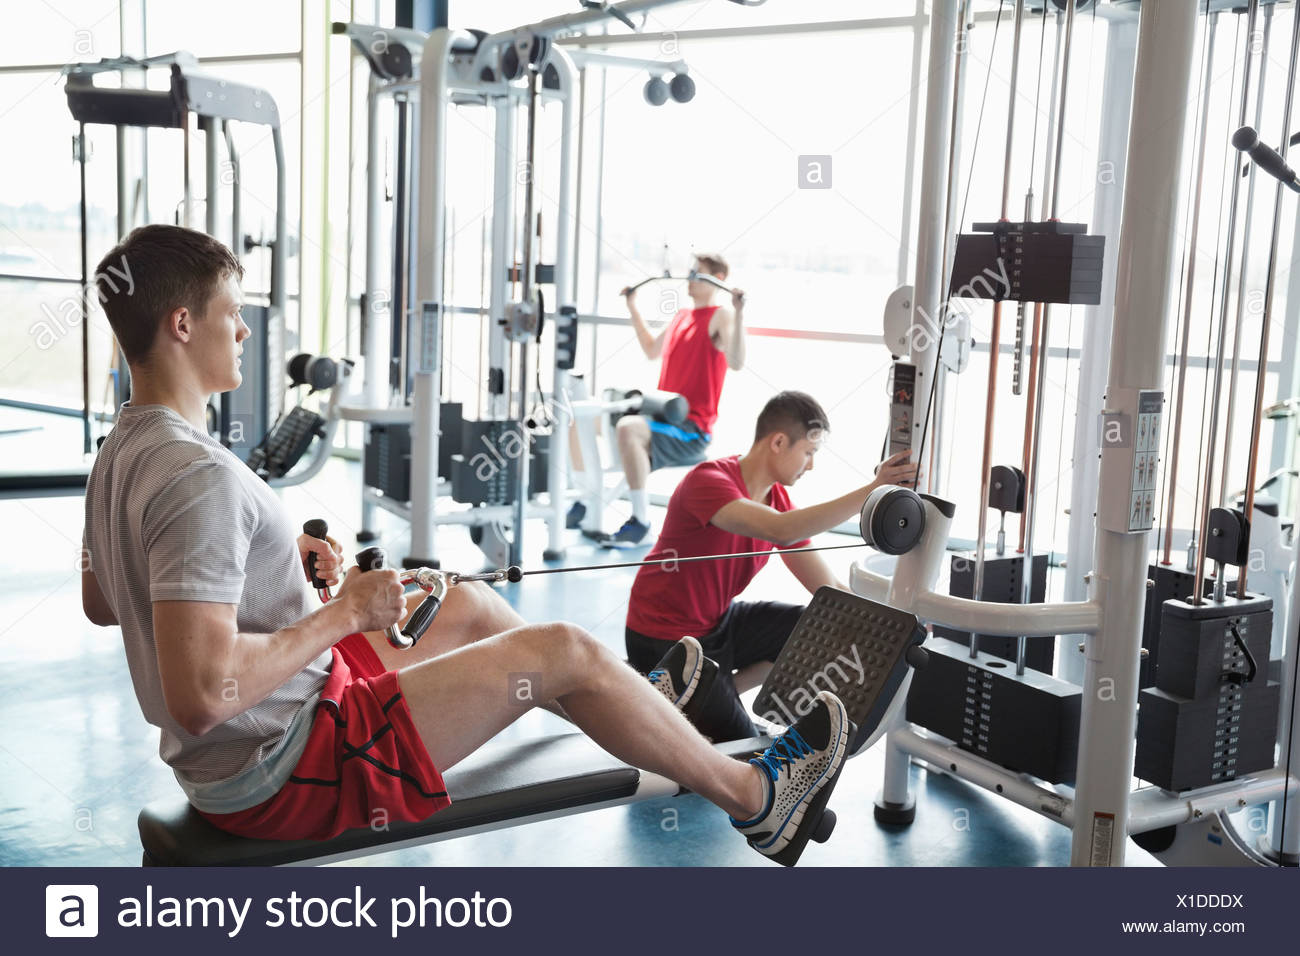 Men using weight machines in fitness center - Stock Image